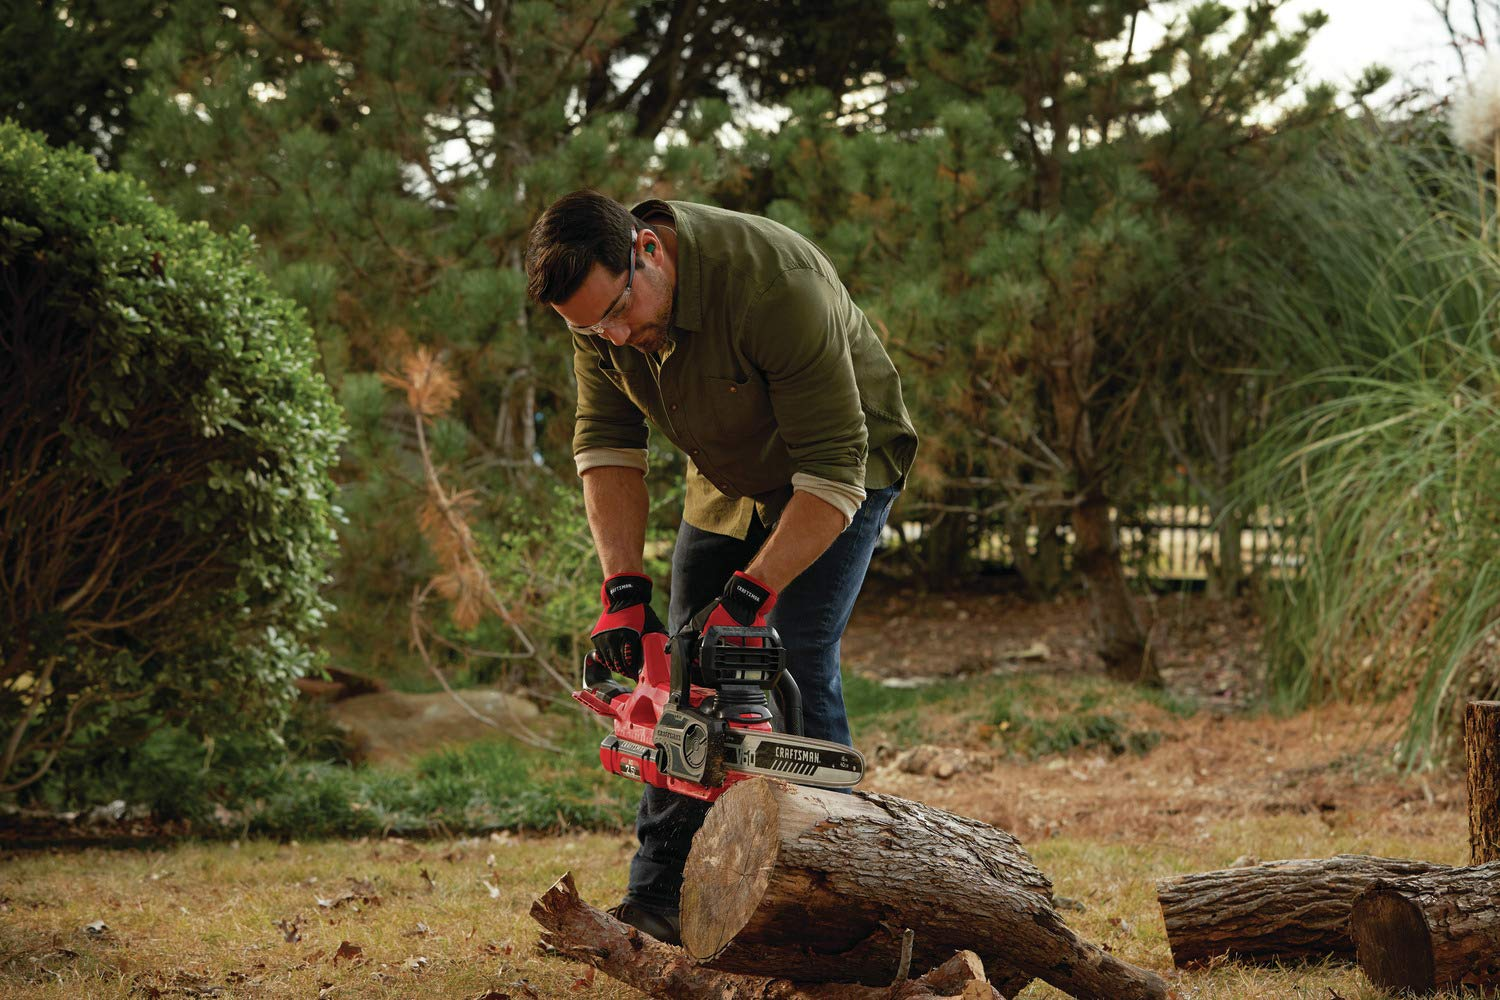 Craftsman CMCCS660E1 Chainsaws product image 14